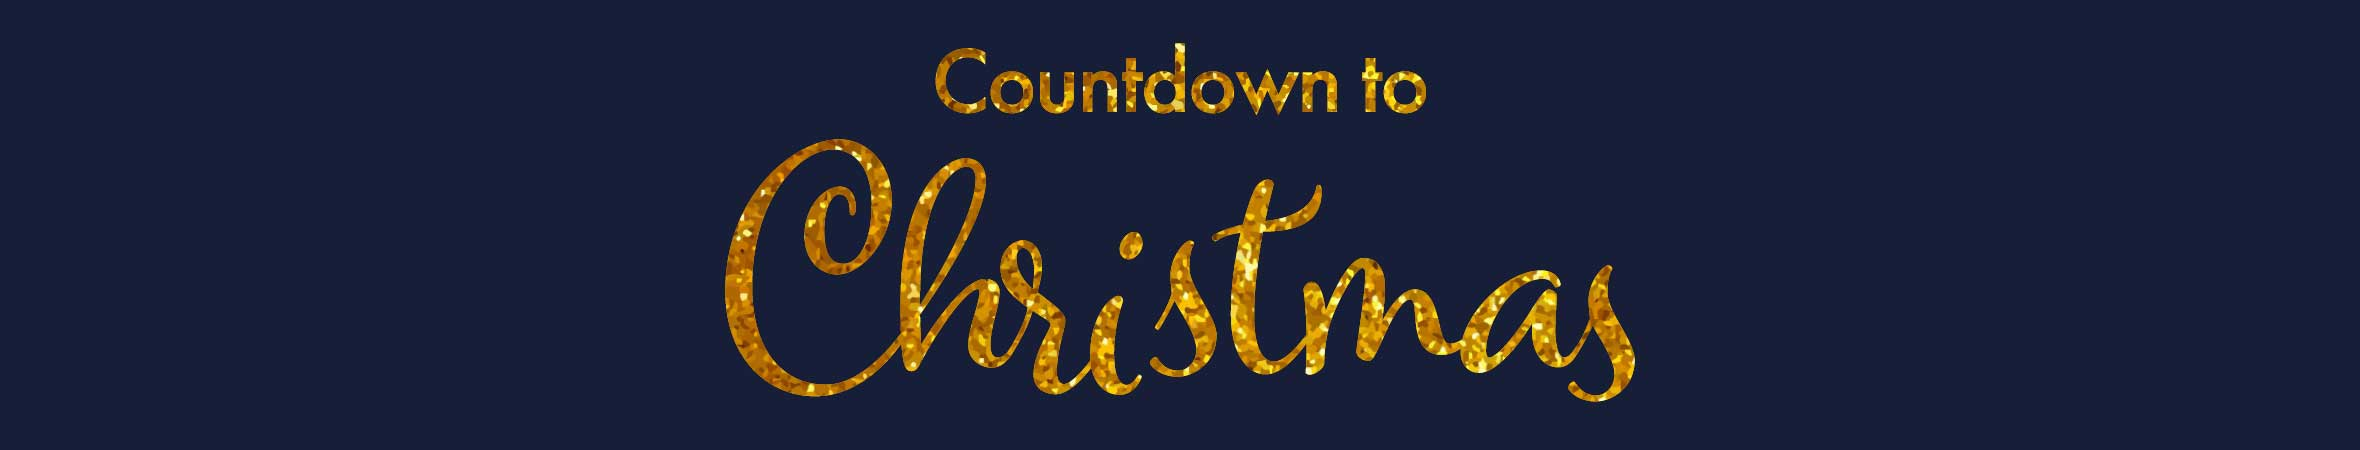 Countdown to Christmas at Hoopers